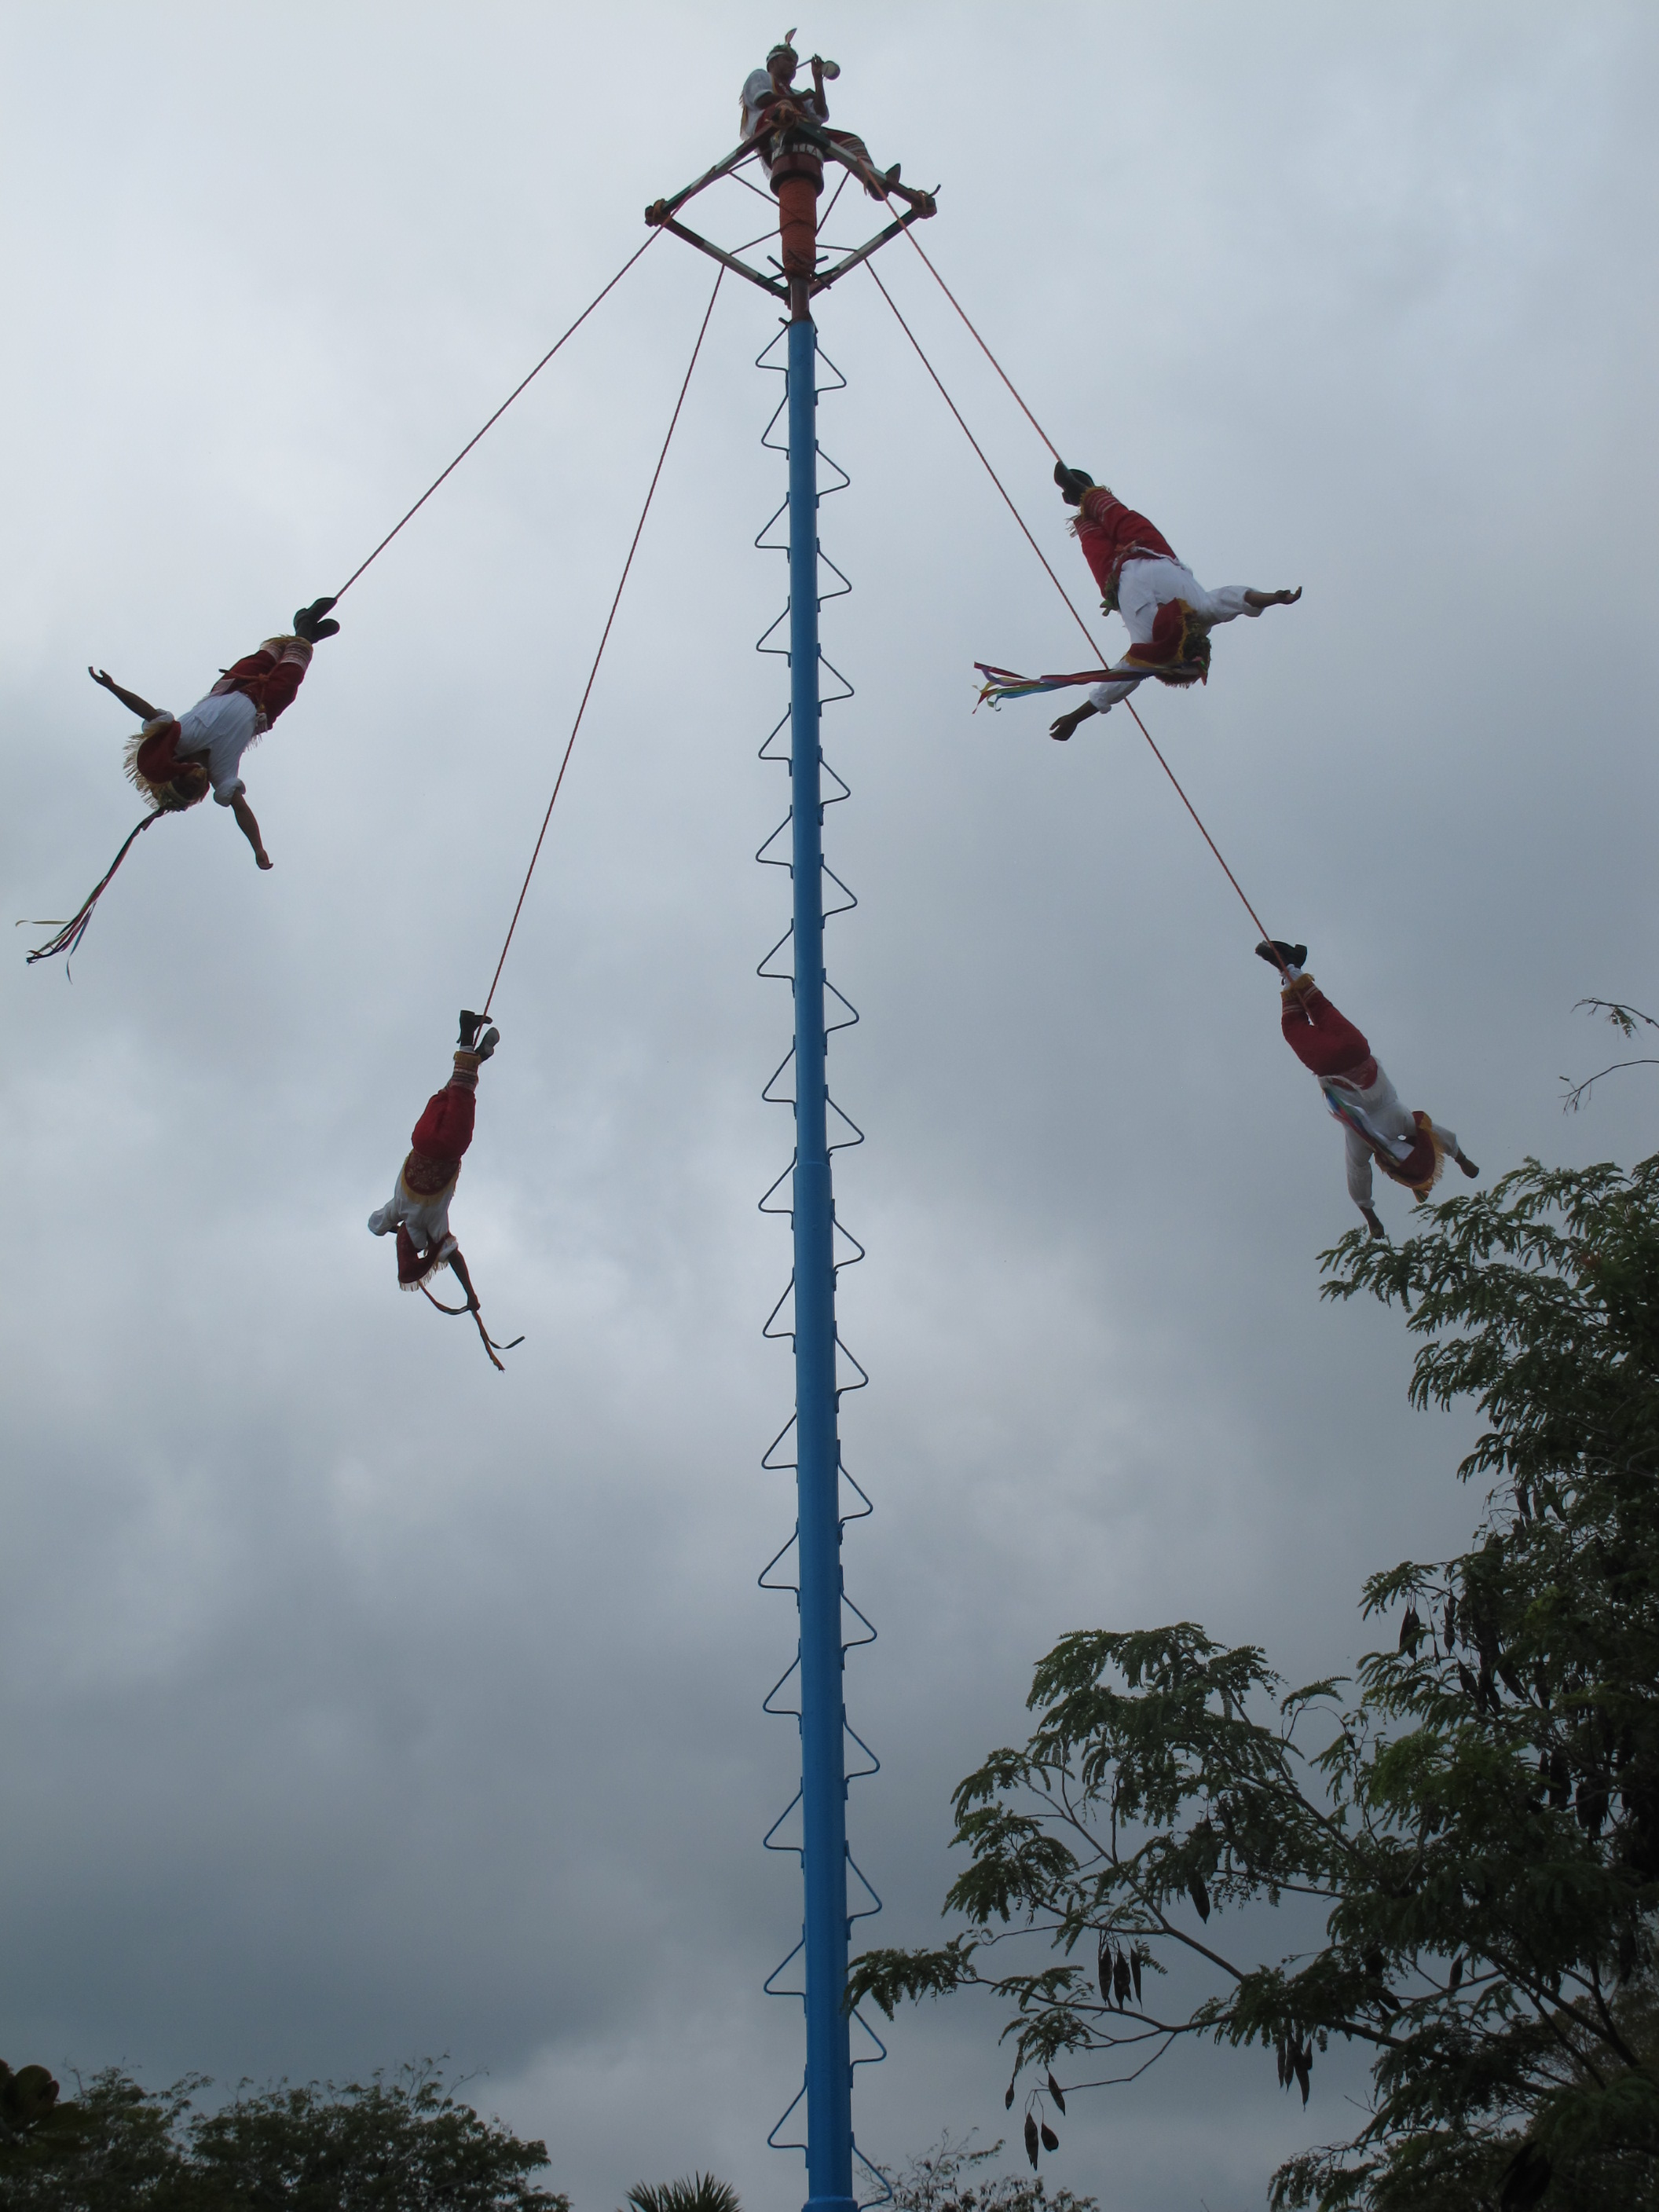 Mayan Pole Flyers at Tulum